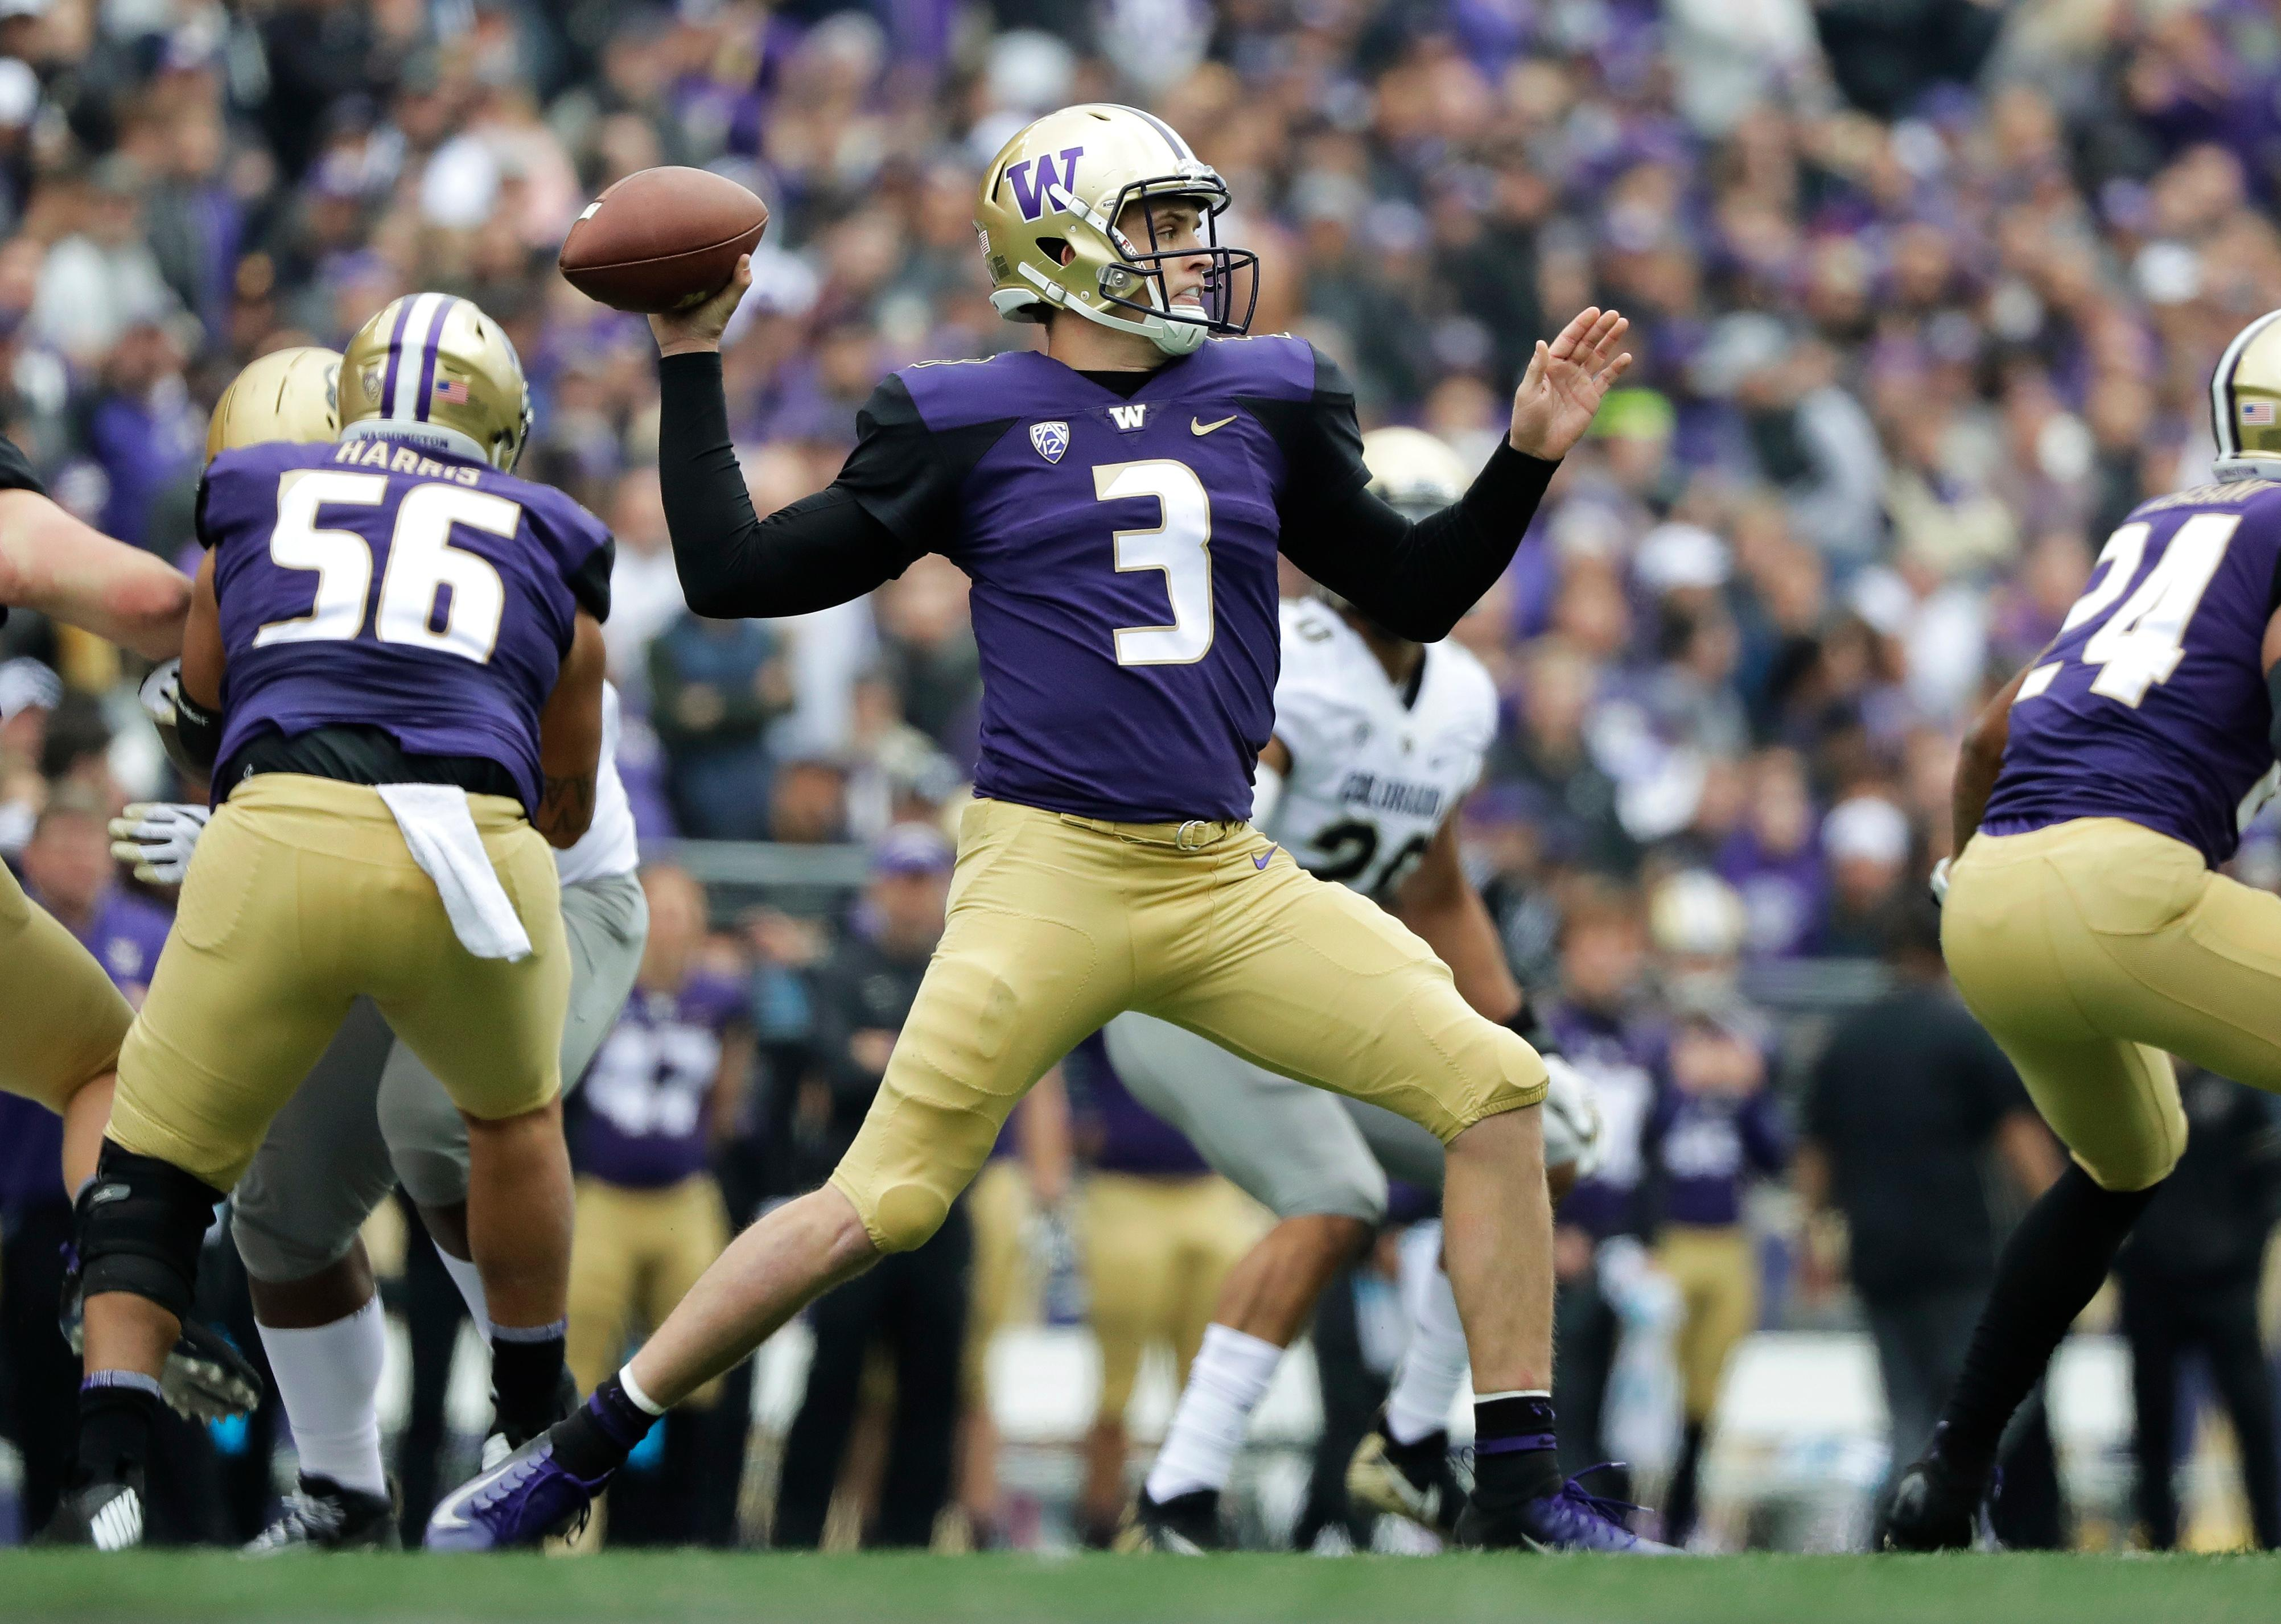 Washington quarterback Jake Browning passes against Colorado during the first half of an NCAA college football game, Saturday, Oct. 20, 2018, in Seattle. (AP Photo/Ted S. Warren)